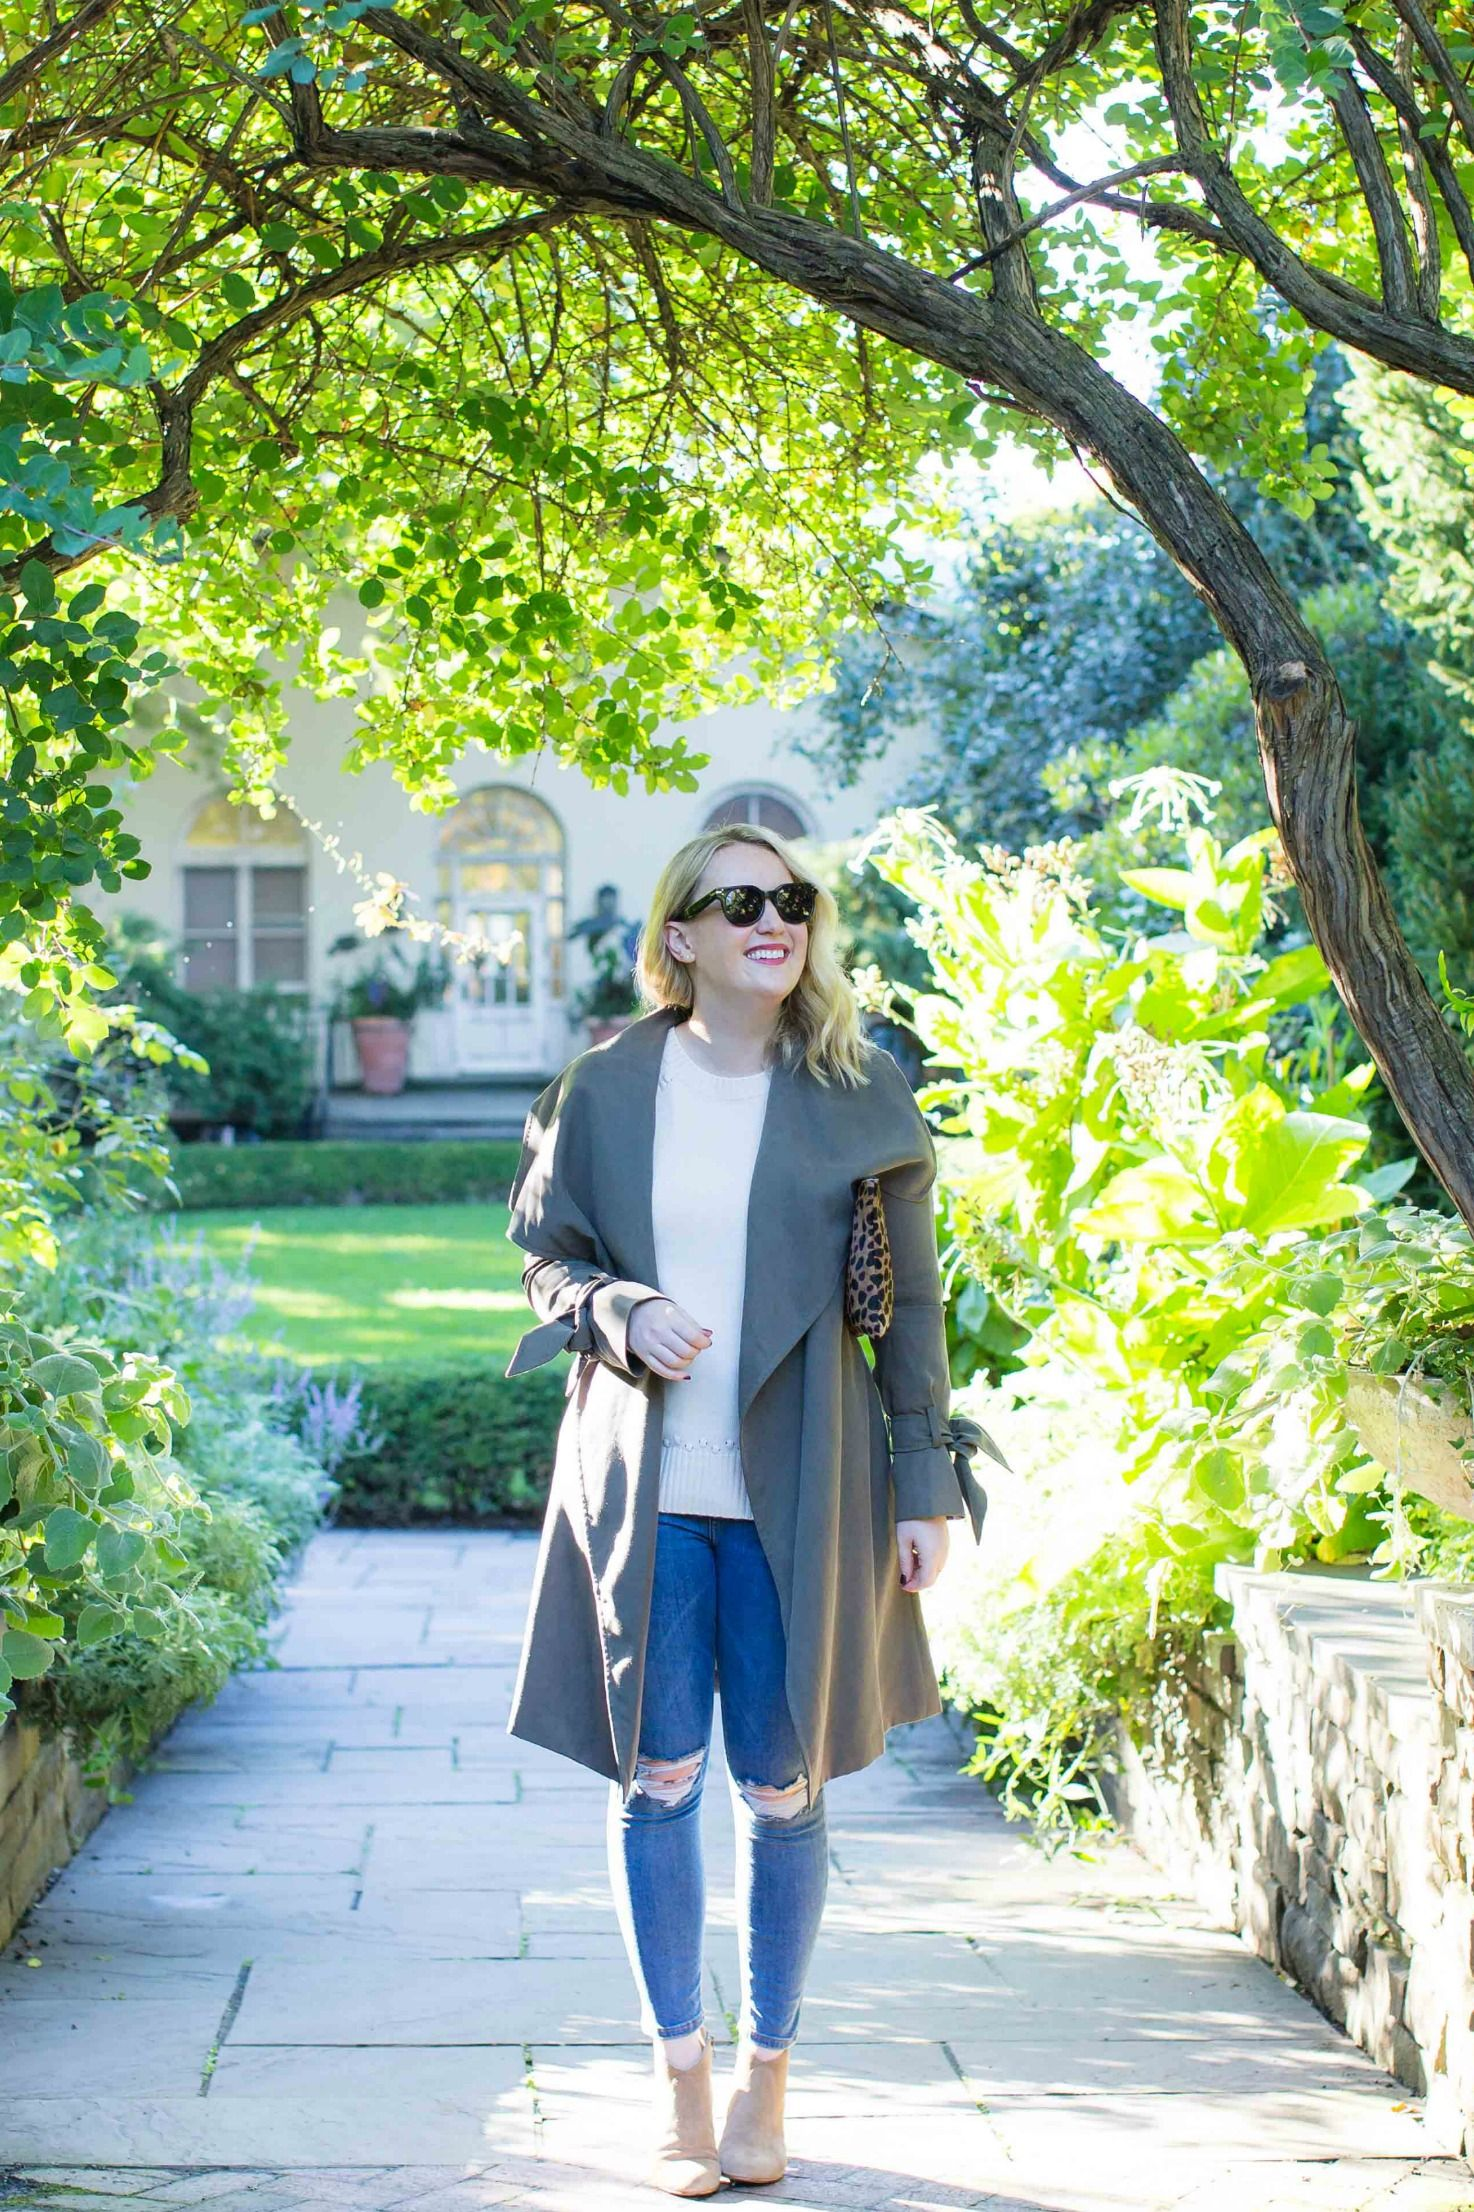 Meghan Donovan of wit & whimsy wears a classic Fall outfit